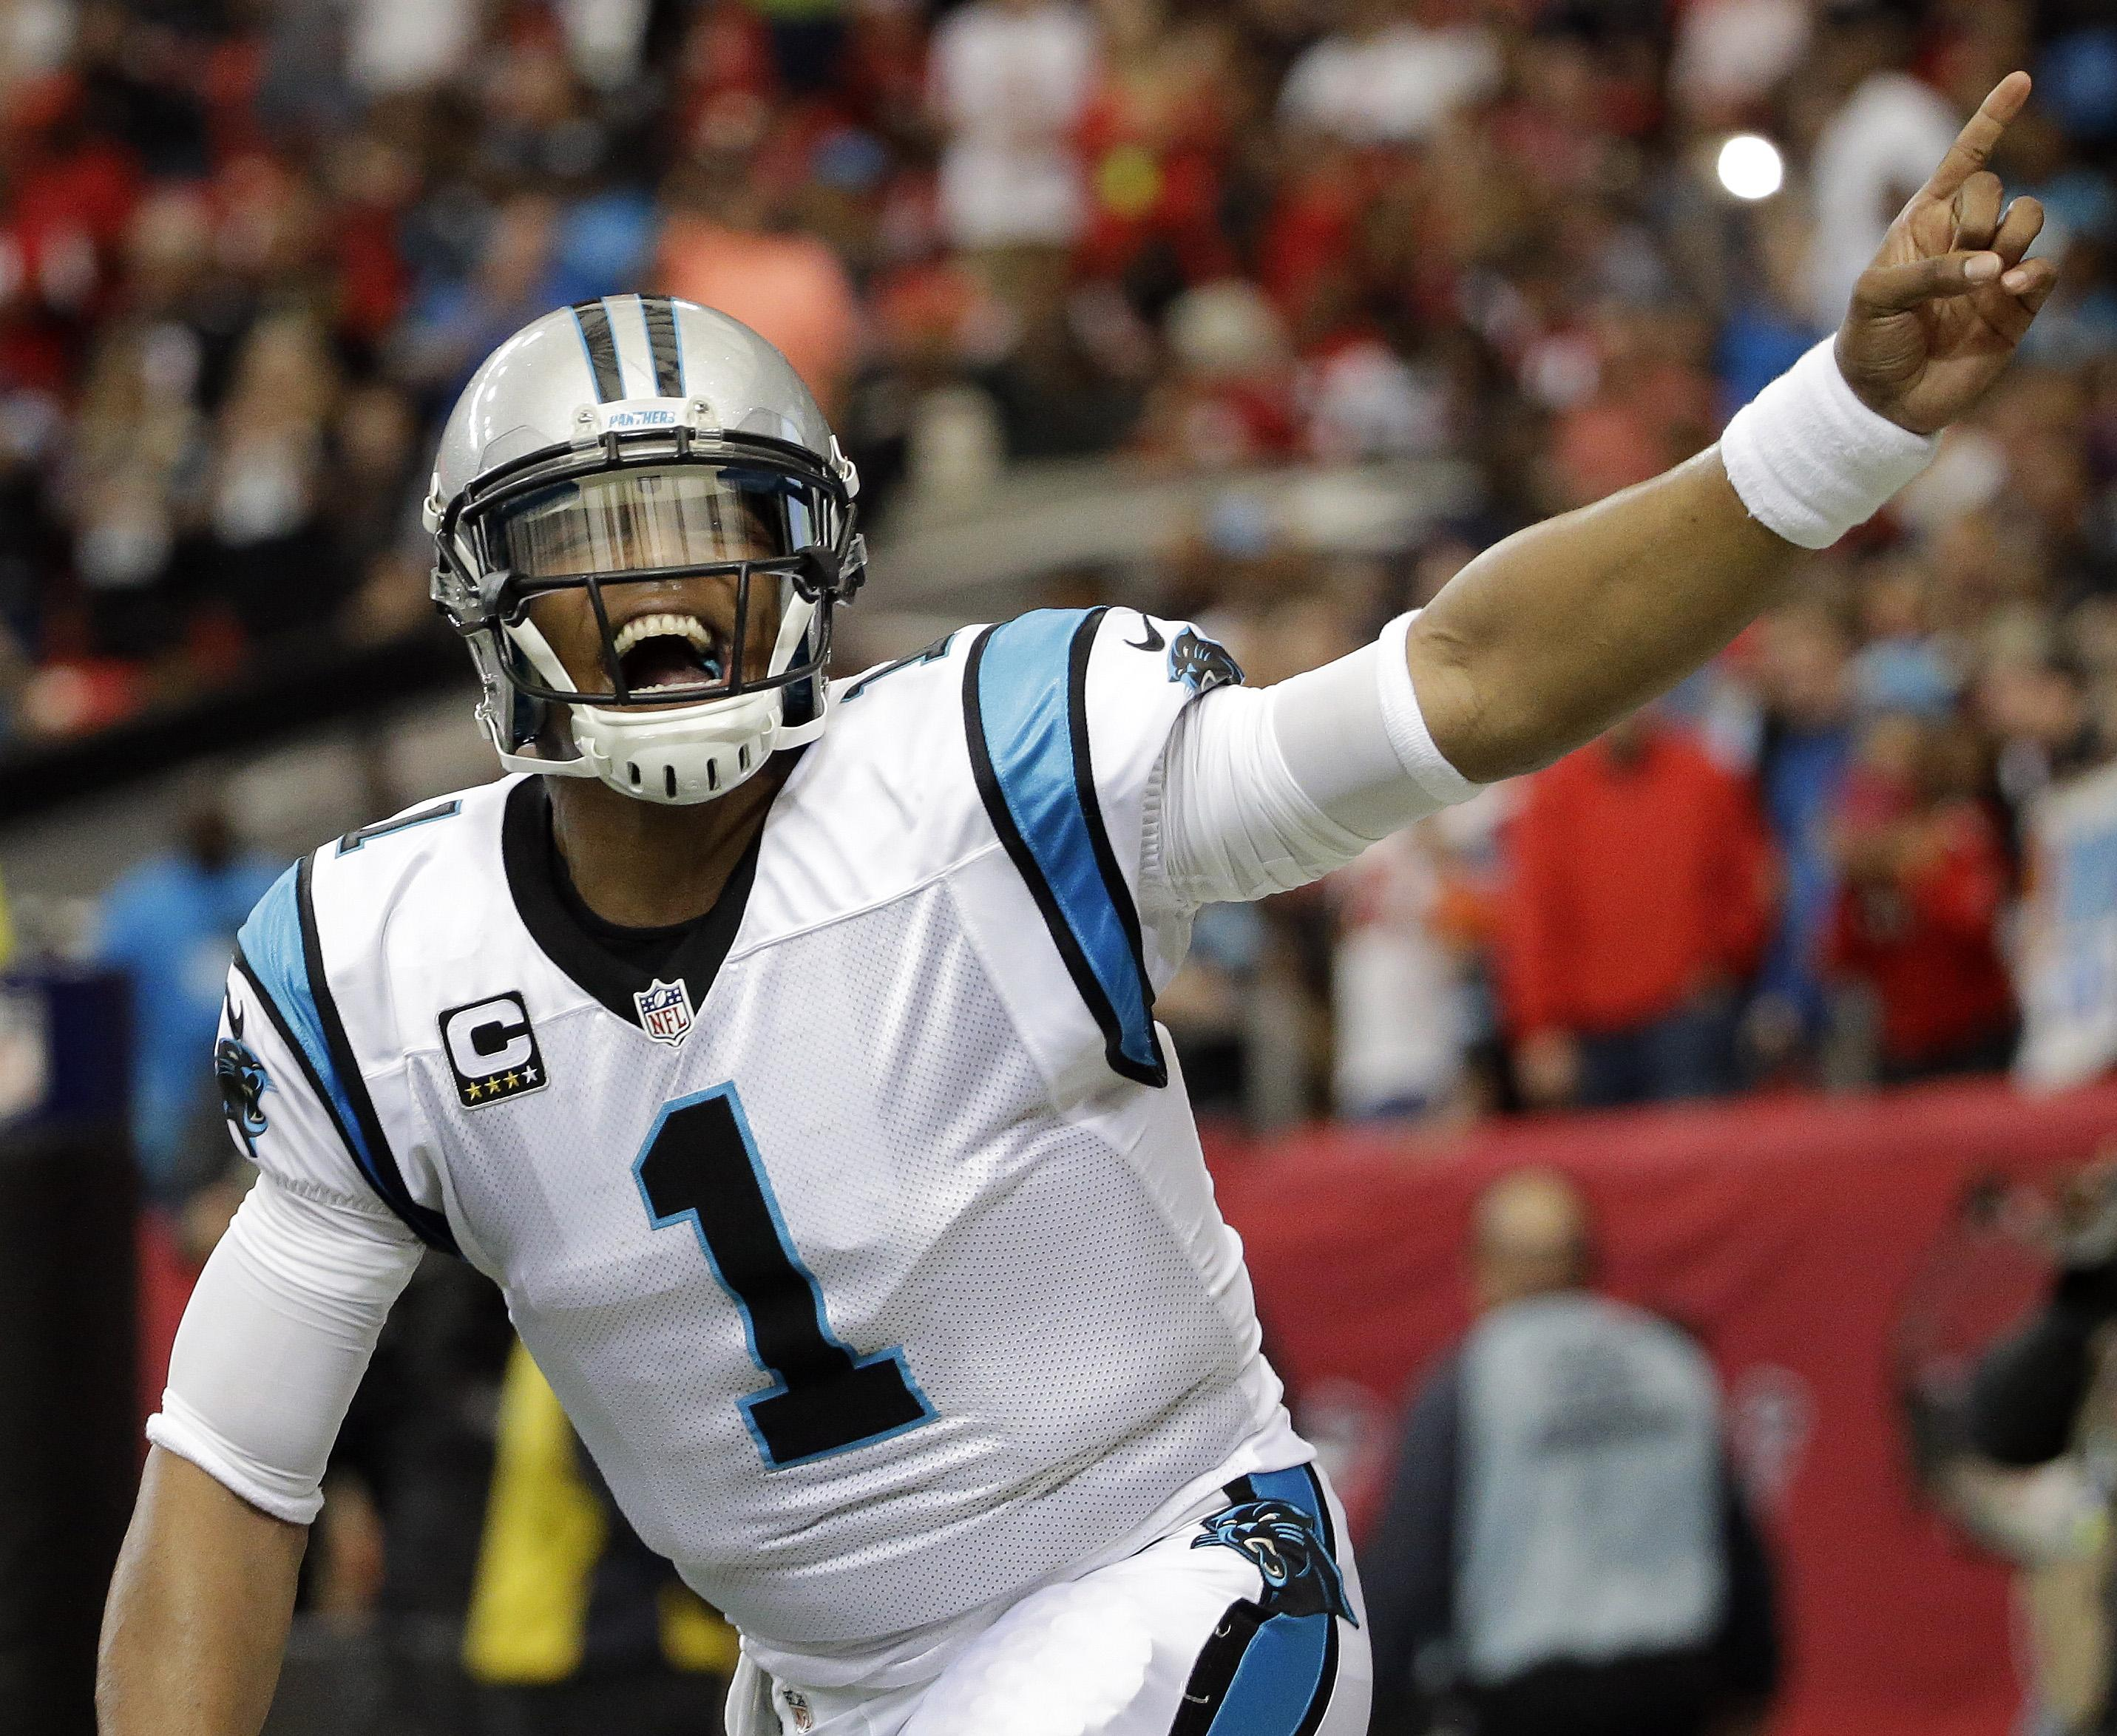 b4004b94d The honors keep rolling in for Carolina quarterback Cam Newton as he  prepares for Super Bowl